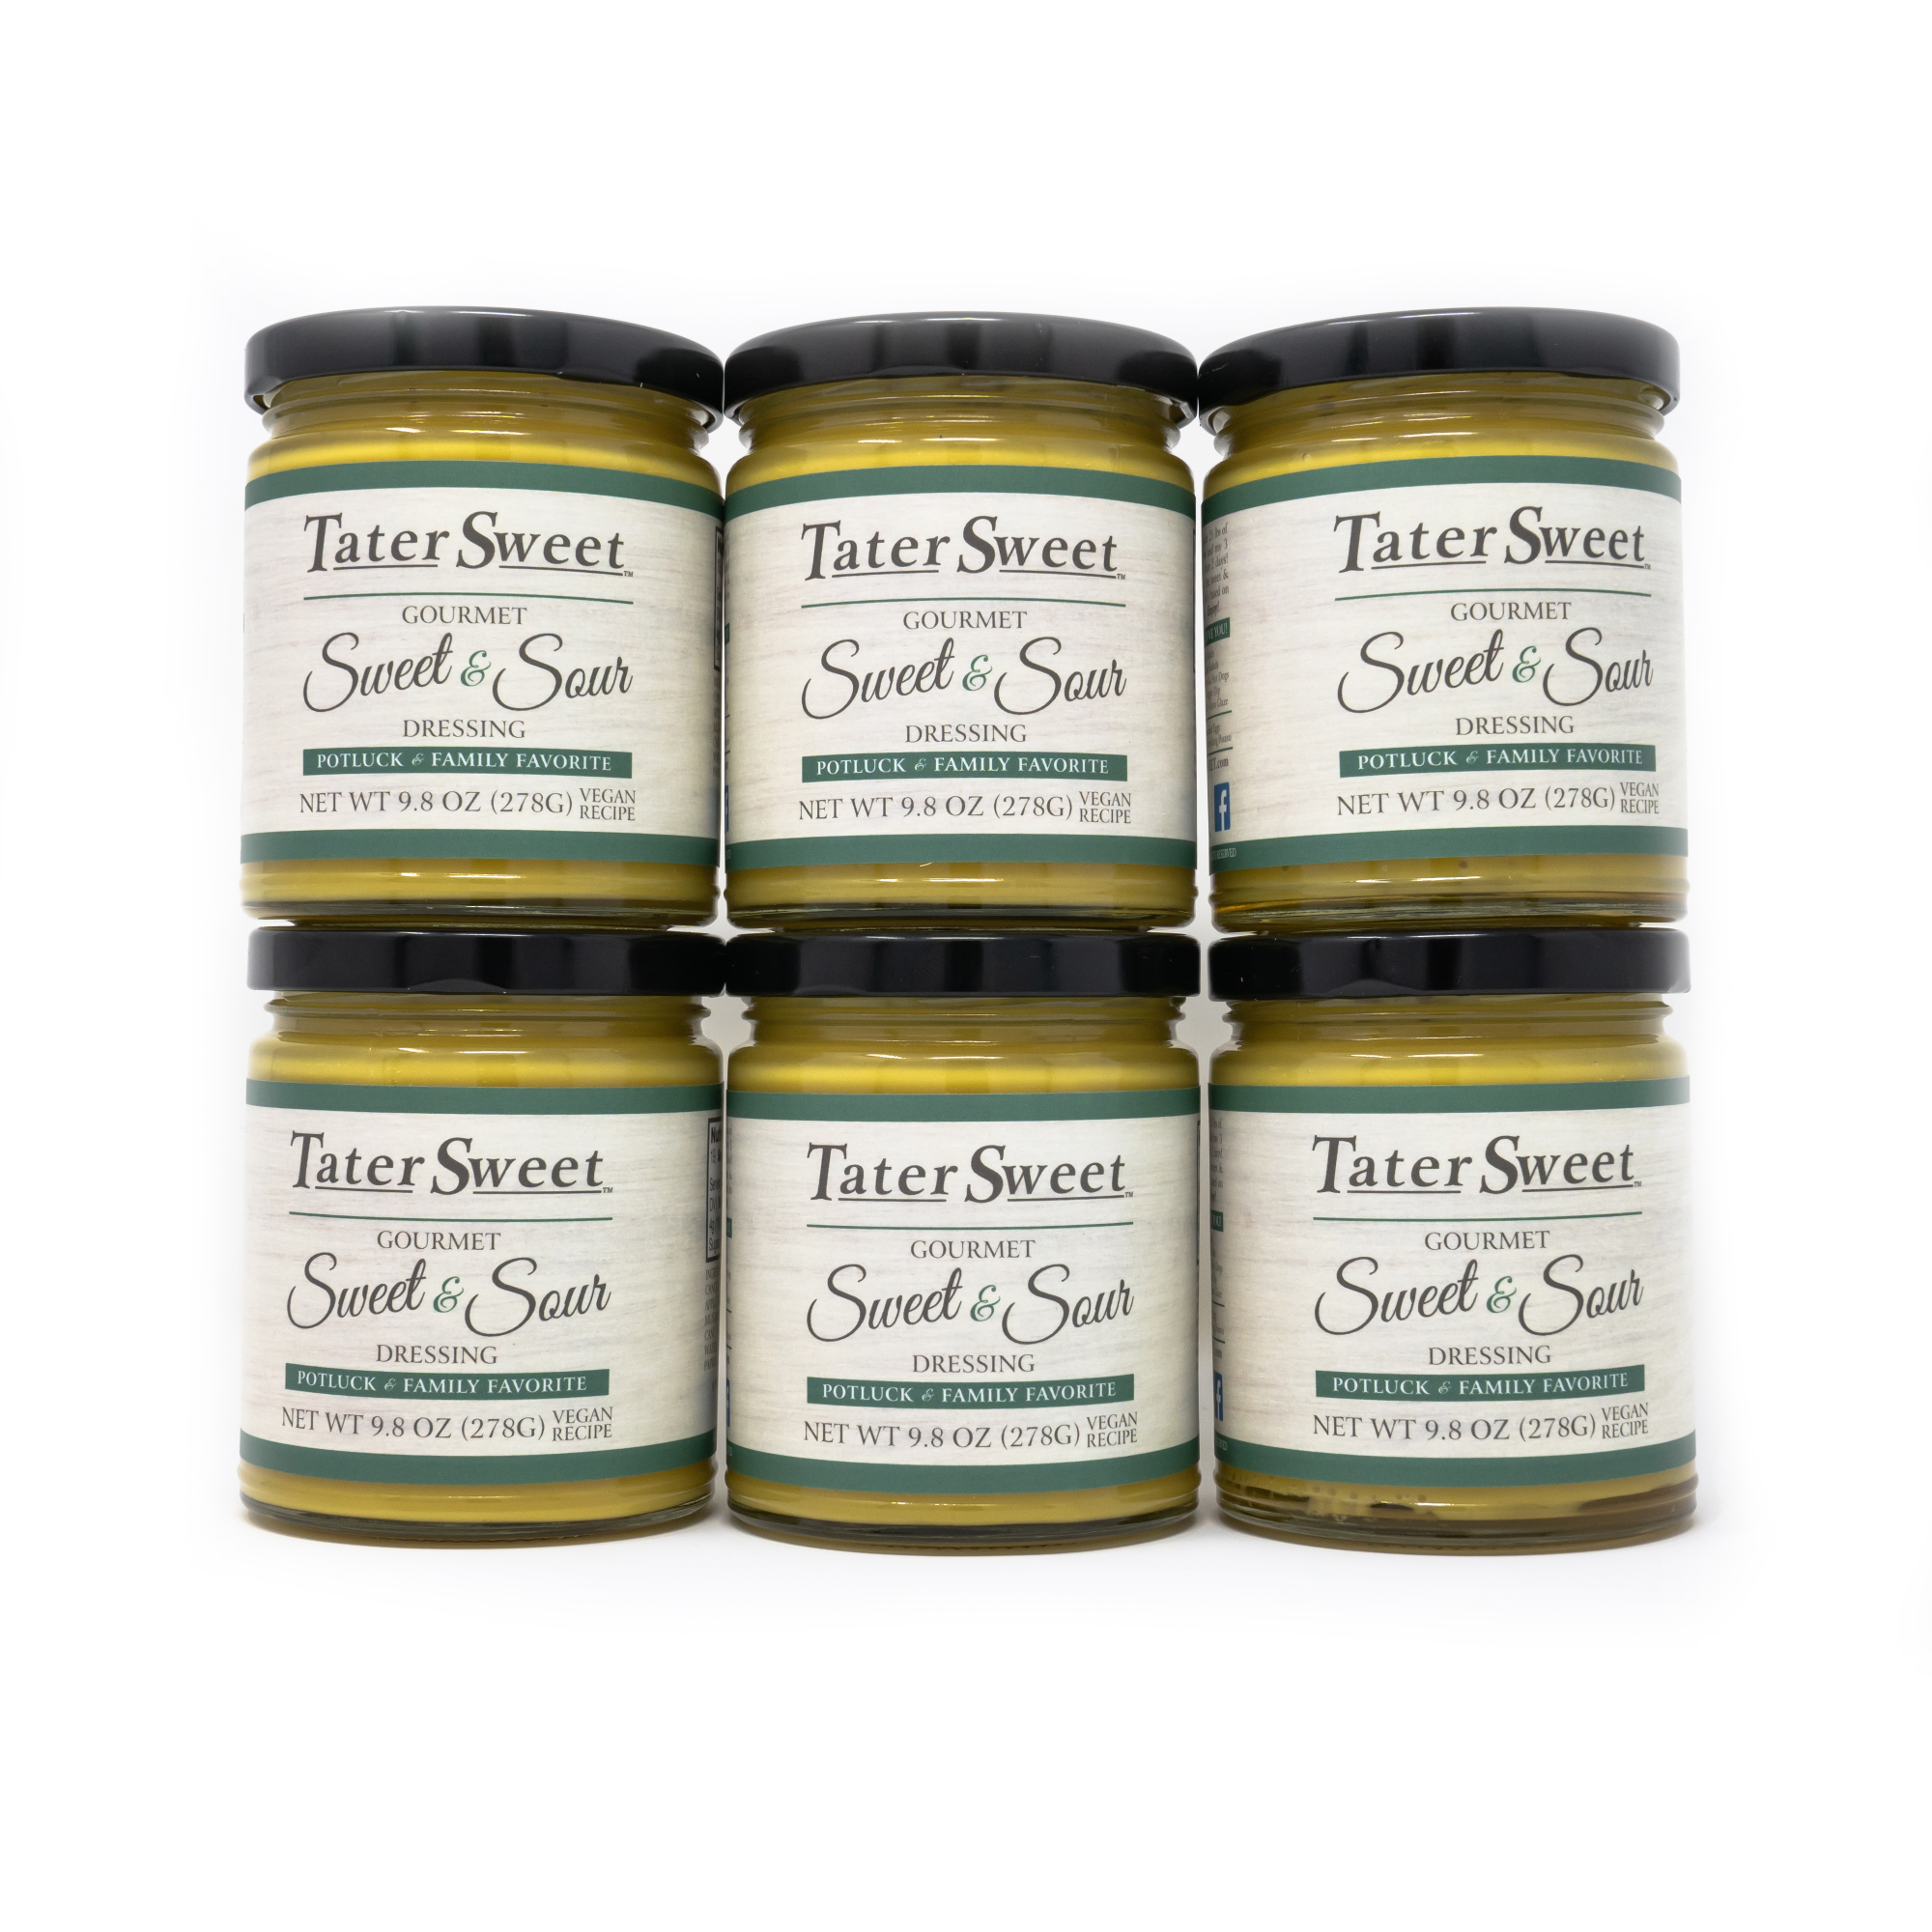 6 glass jars filled with TaterSweet Gourmet Dressing - Vegan